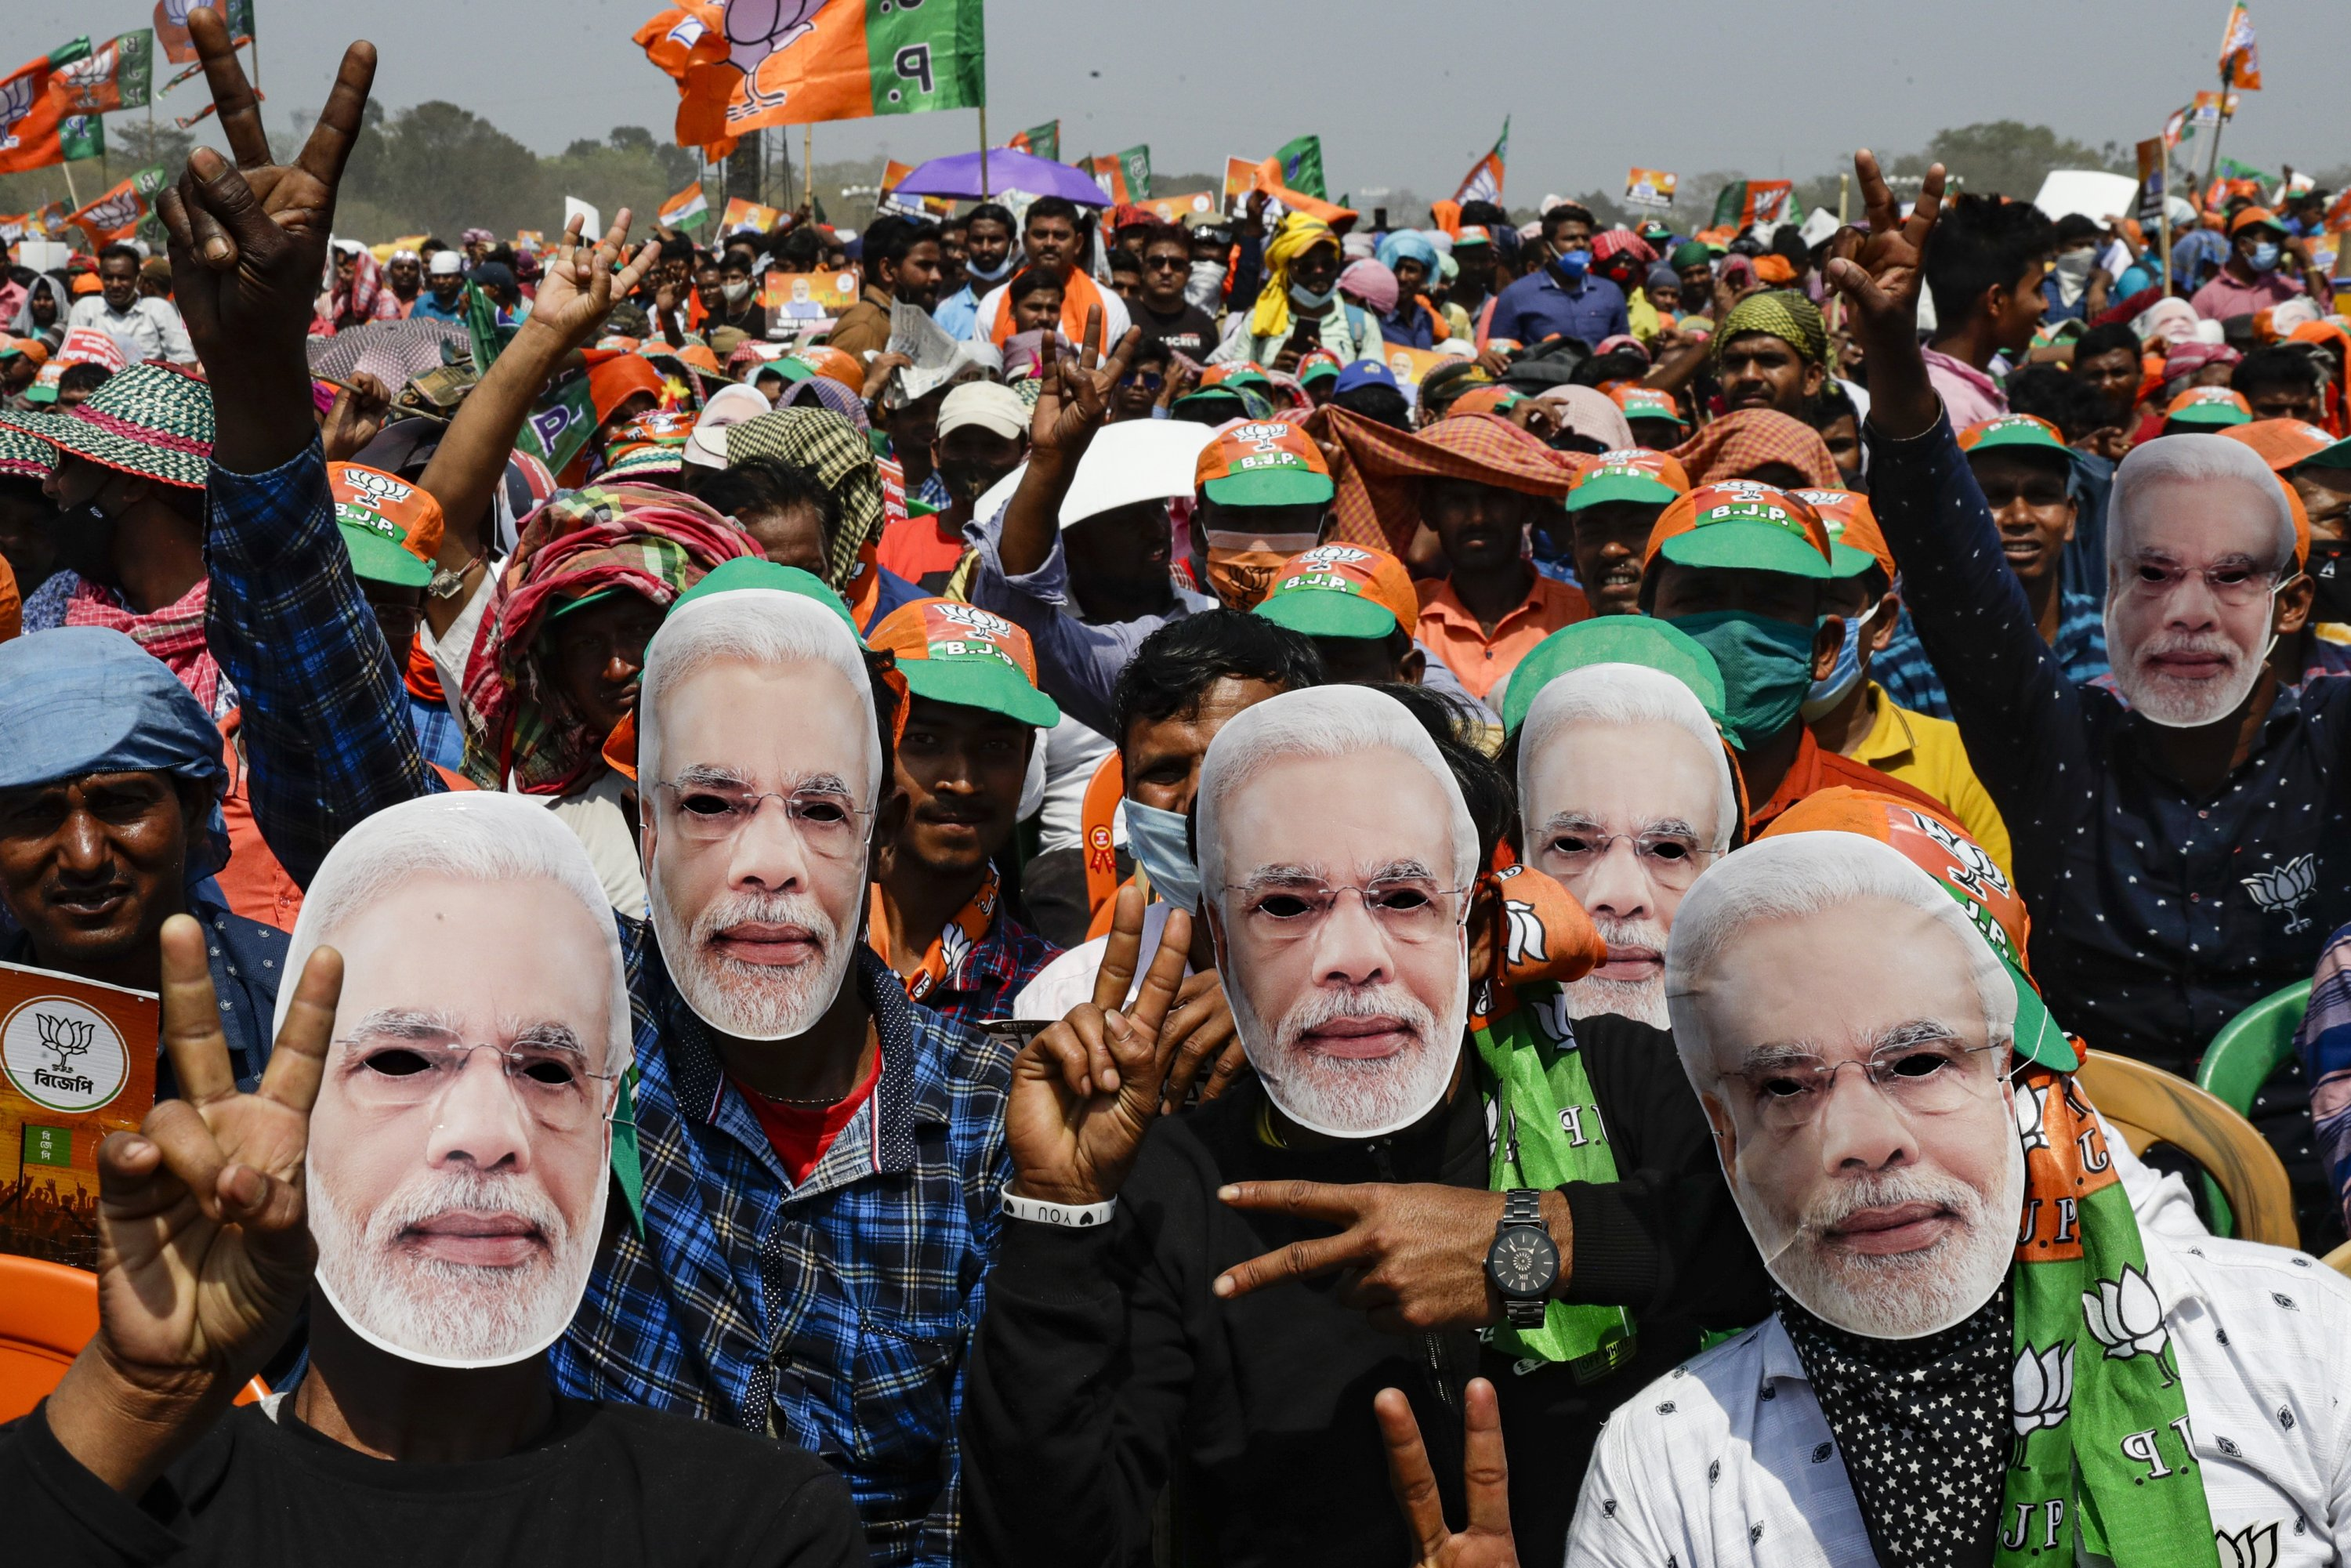 Bharatiya Janata Party (BJP) supporters wear masks of Prime Minister Narendra Modi as they gather for a rally addressed by Modi ahead of West Bengal state elections in Kolkata, India, March 7, 2021. (AP Photo/File)